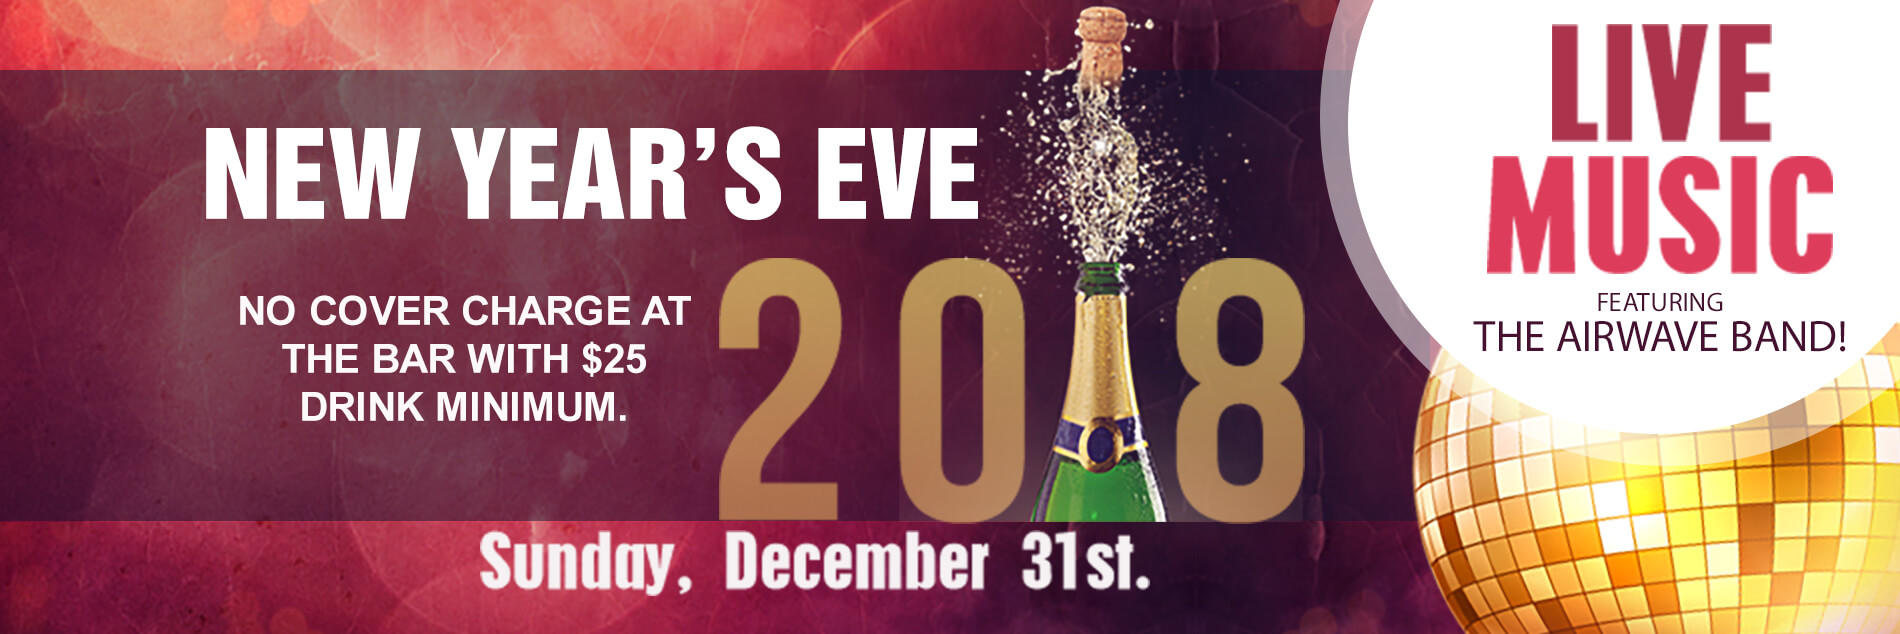 Happy New Years 2018 from The Celestial Steakhouse